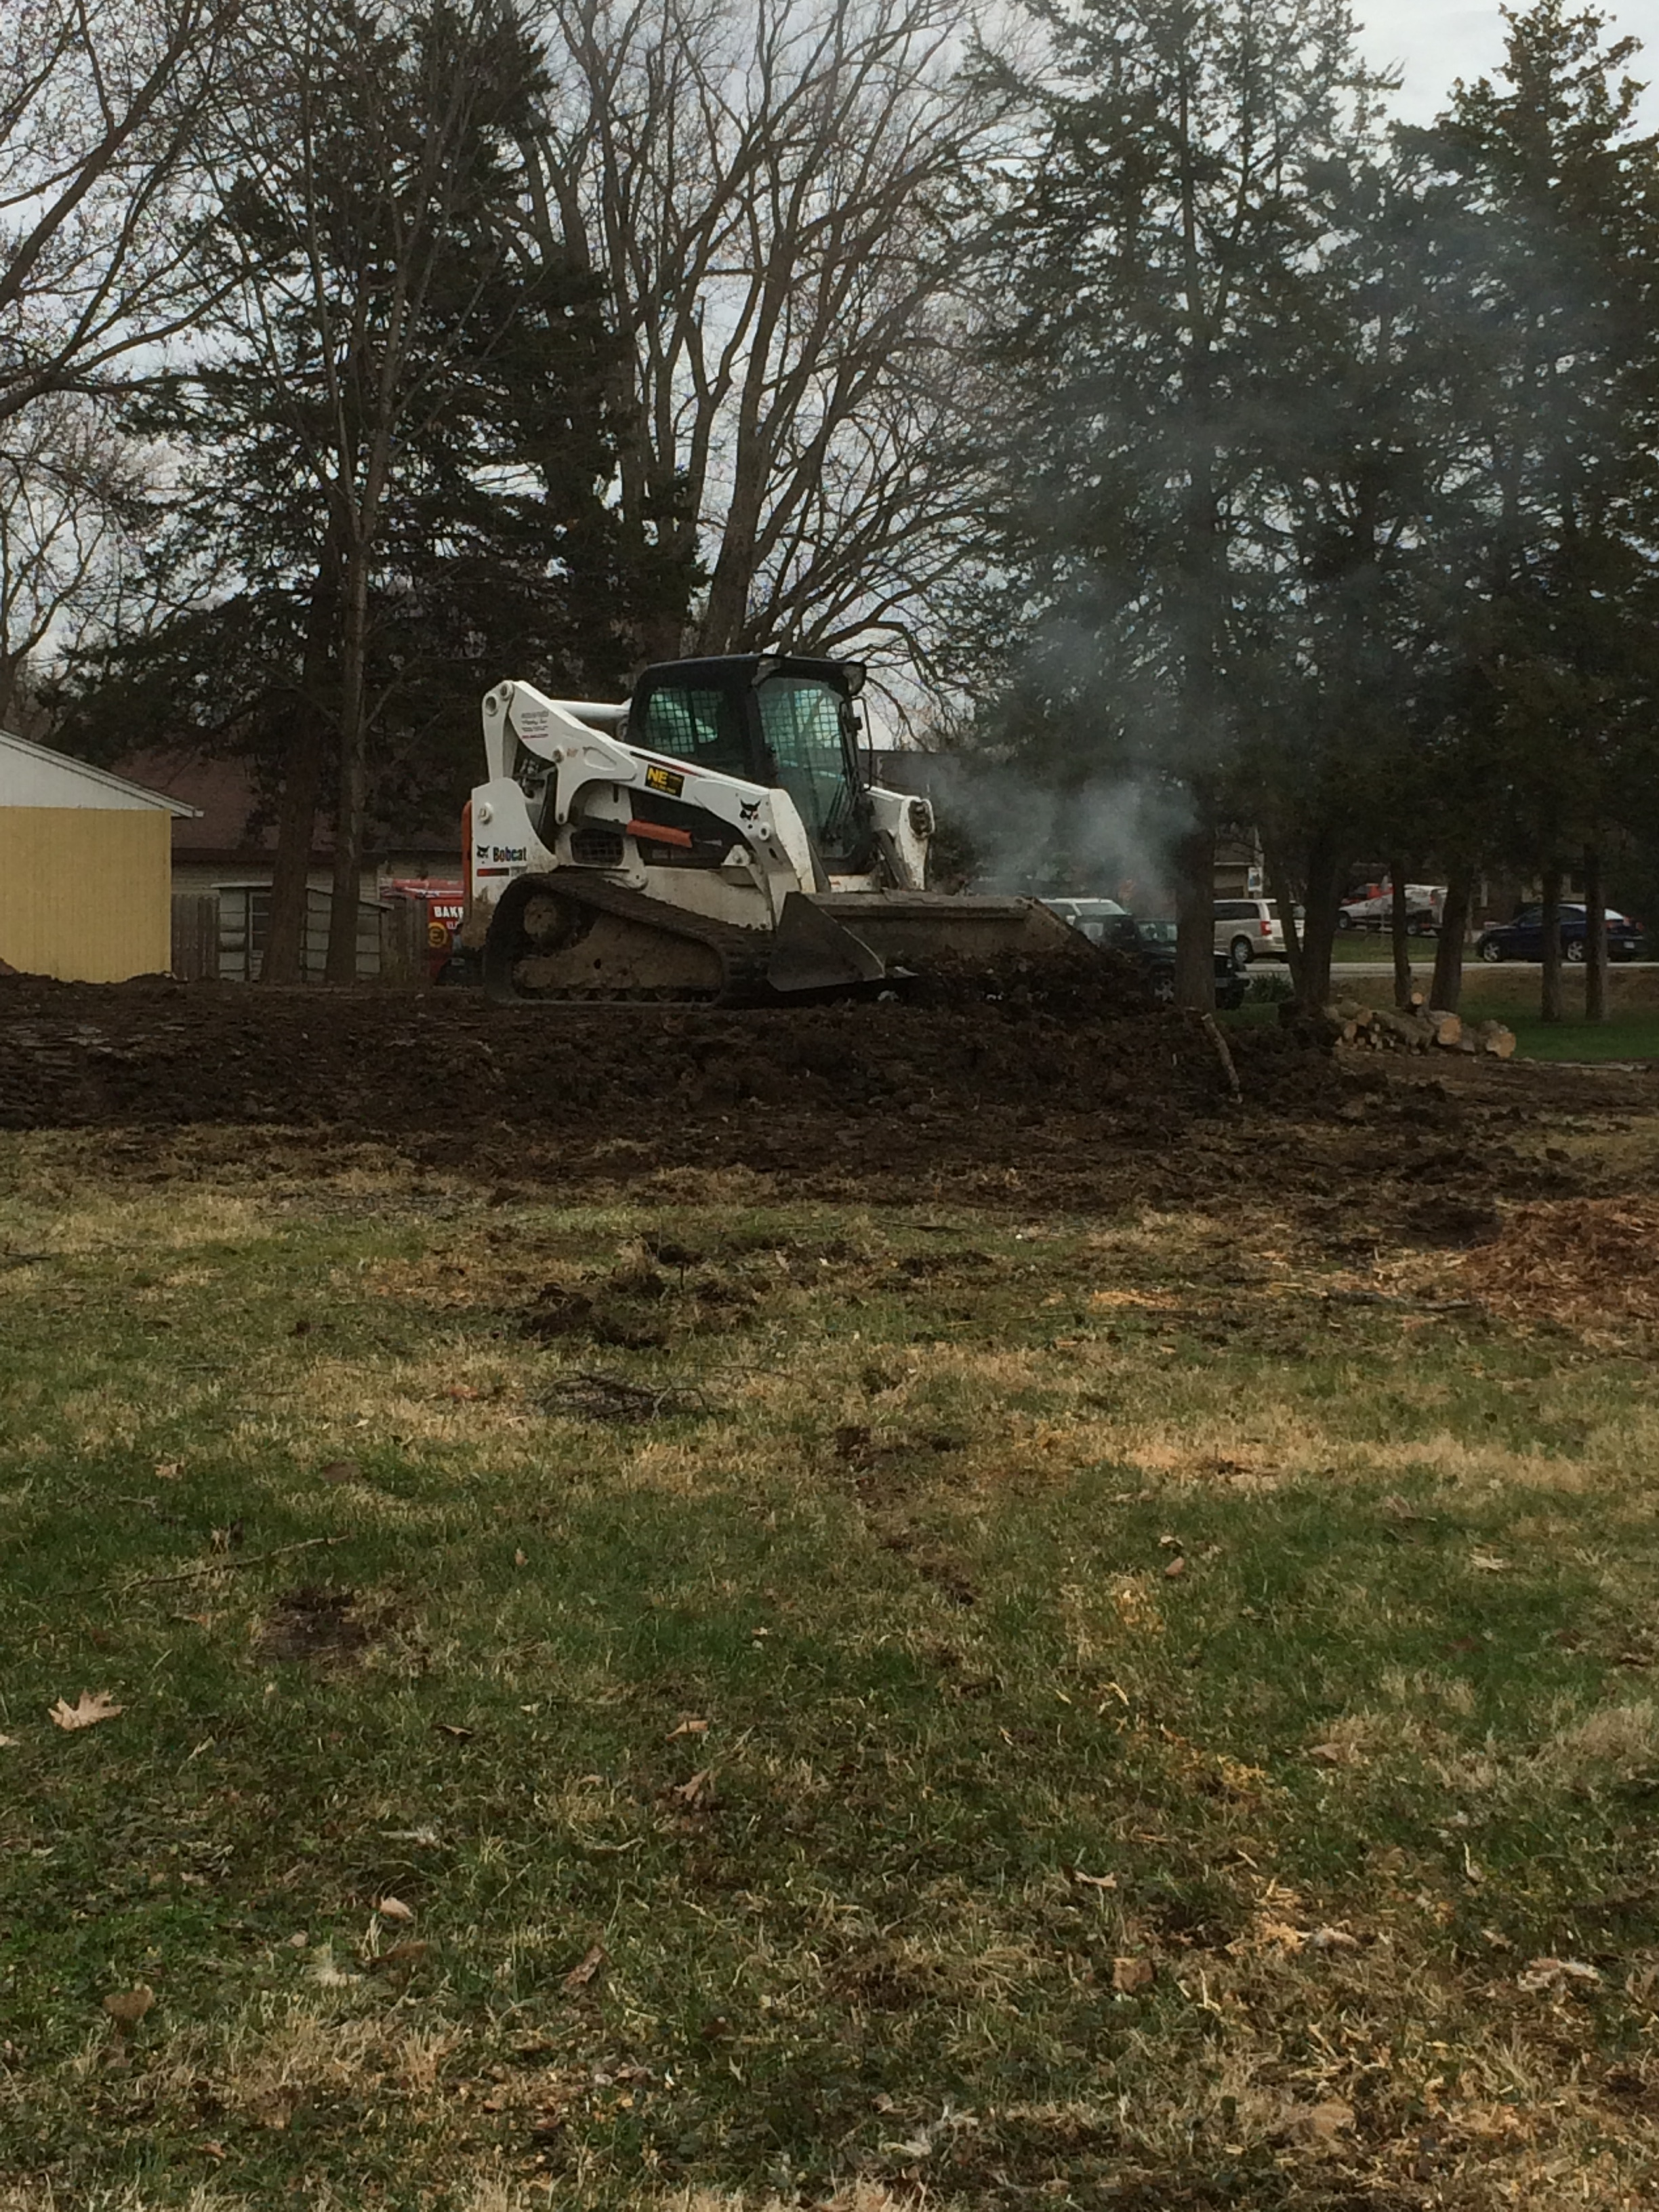 Dirt work getting done at the site of the pole barn